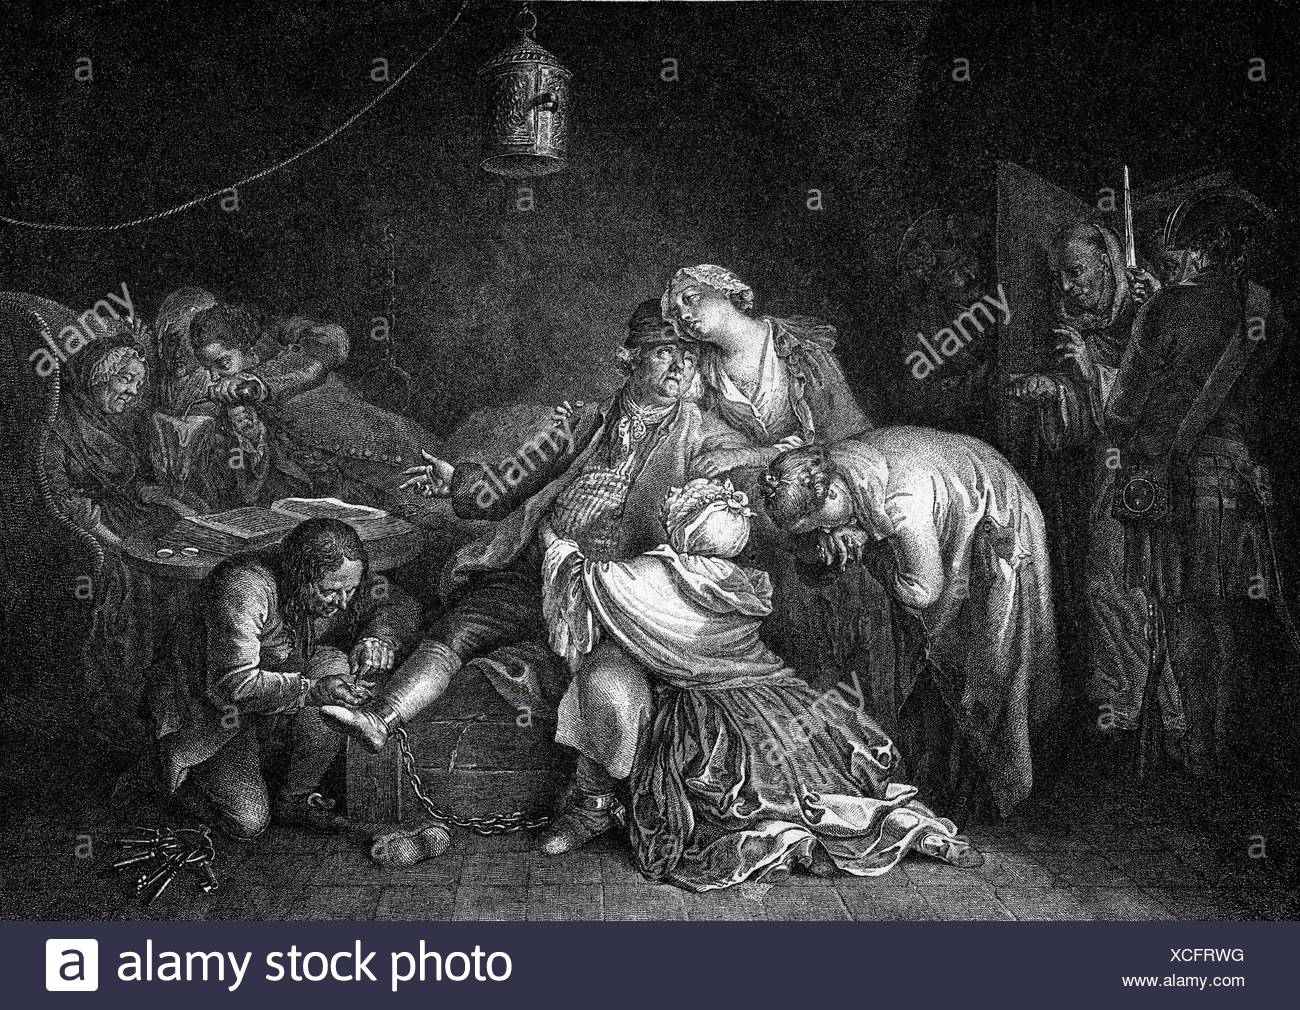 Calas, Jean, 19.3.1698 - 9.3. 1762, French merchant, Huguenot martyr, after engraving by Daniel Chodowiecki 'Jean Calas Bidding Farewell to his Family' (1767), Additional-Rights-Clearances-NA - Stock Image